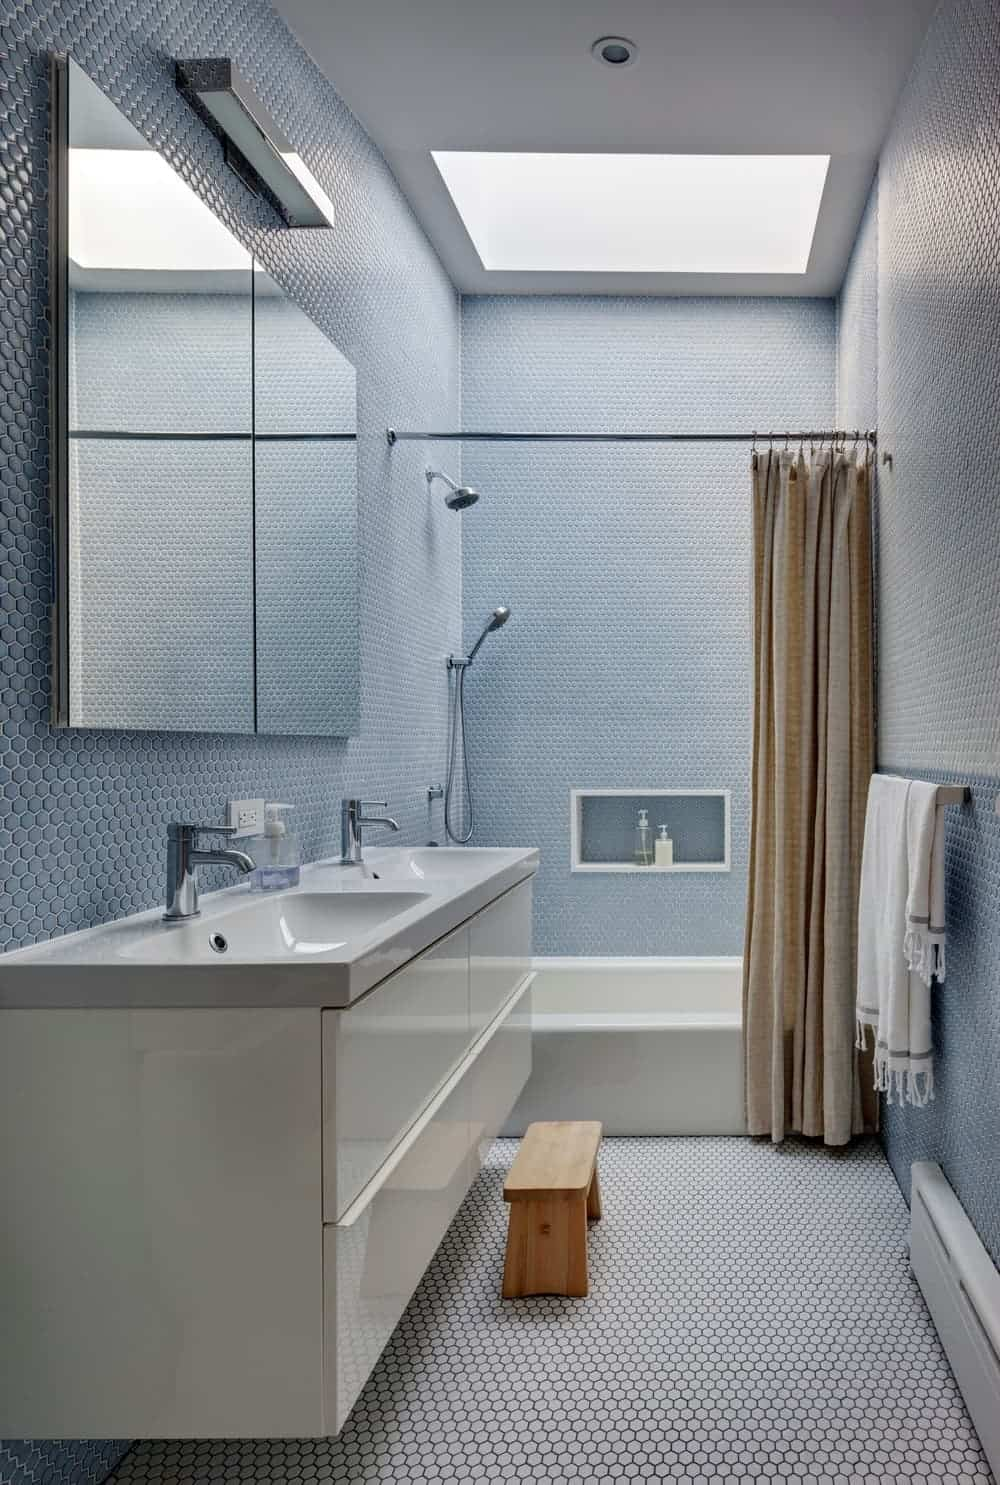 Contemporary bathroom with a tub and shower combo along with a double sink and skylight. Photo Credit: Francis Dzikowski/OTTO